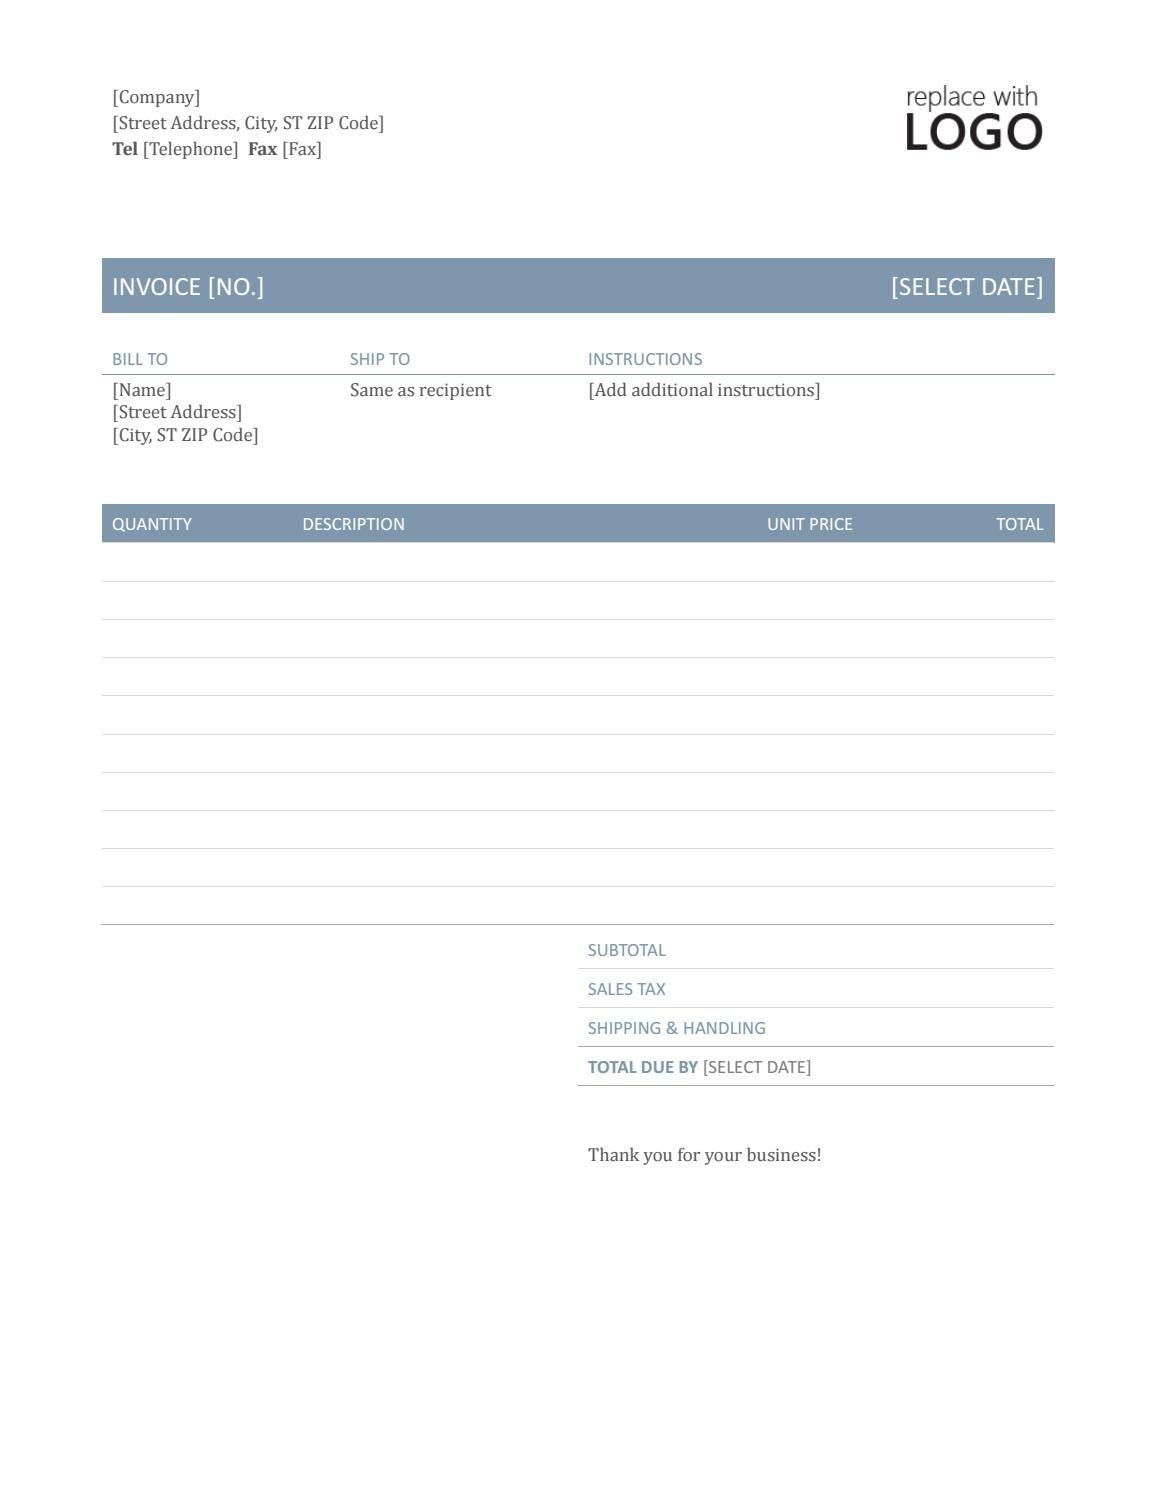 Travel Expenses Quotation Template  Quotation Format Template